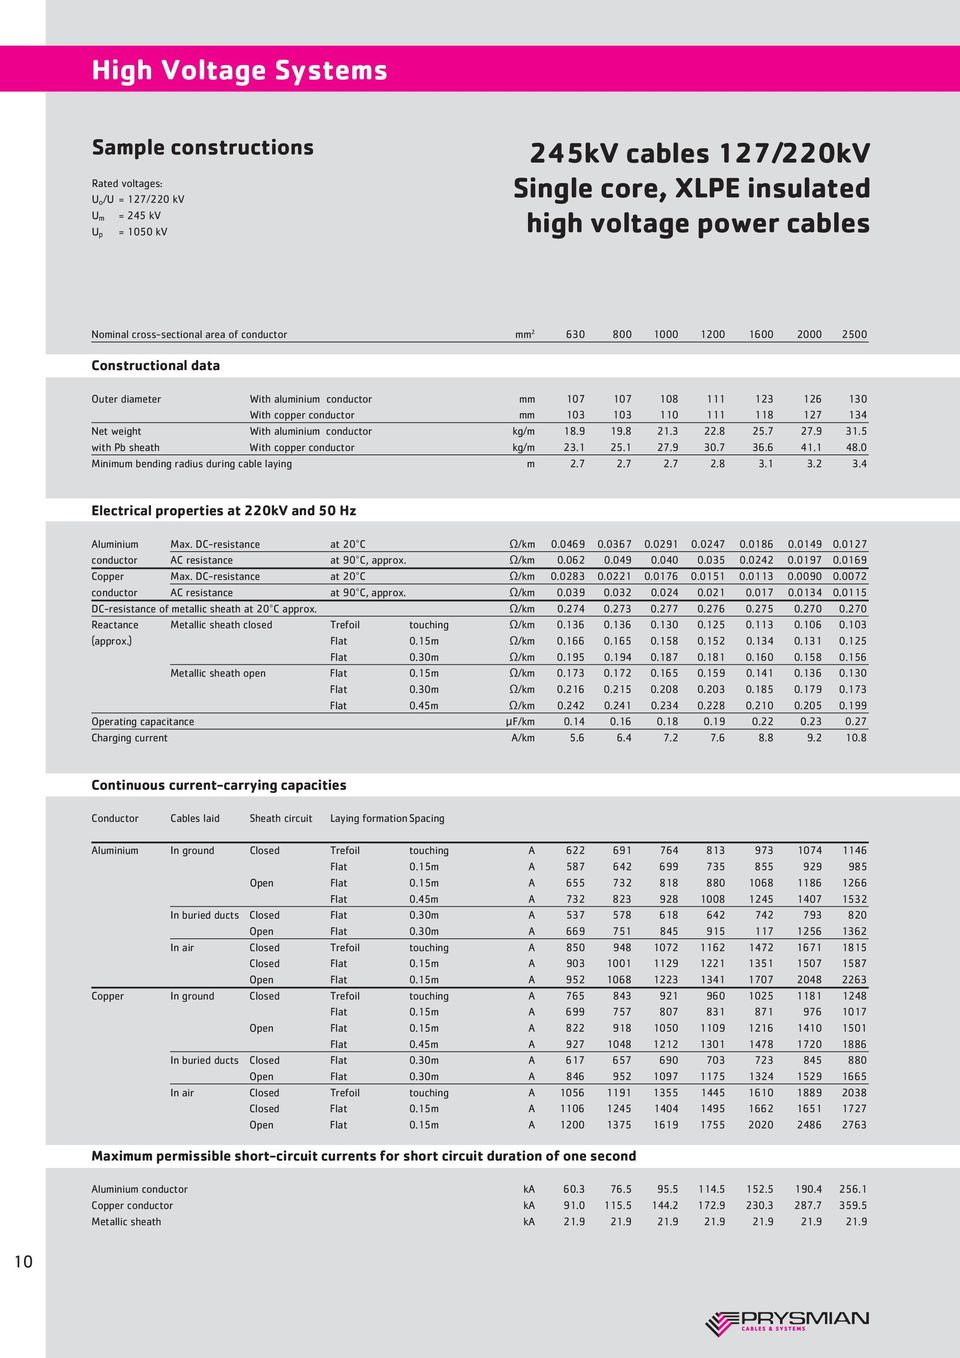 High Voltage Systems. Today. The history of cables - PDF